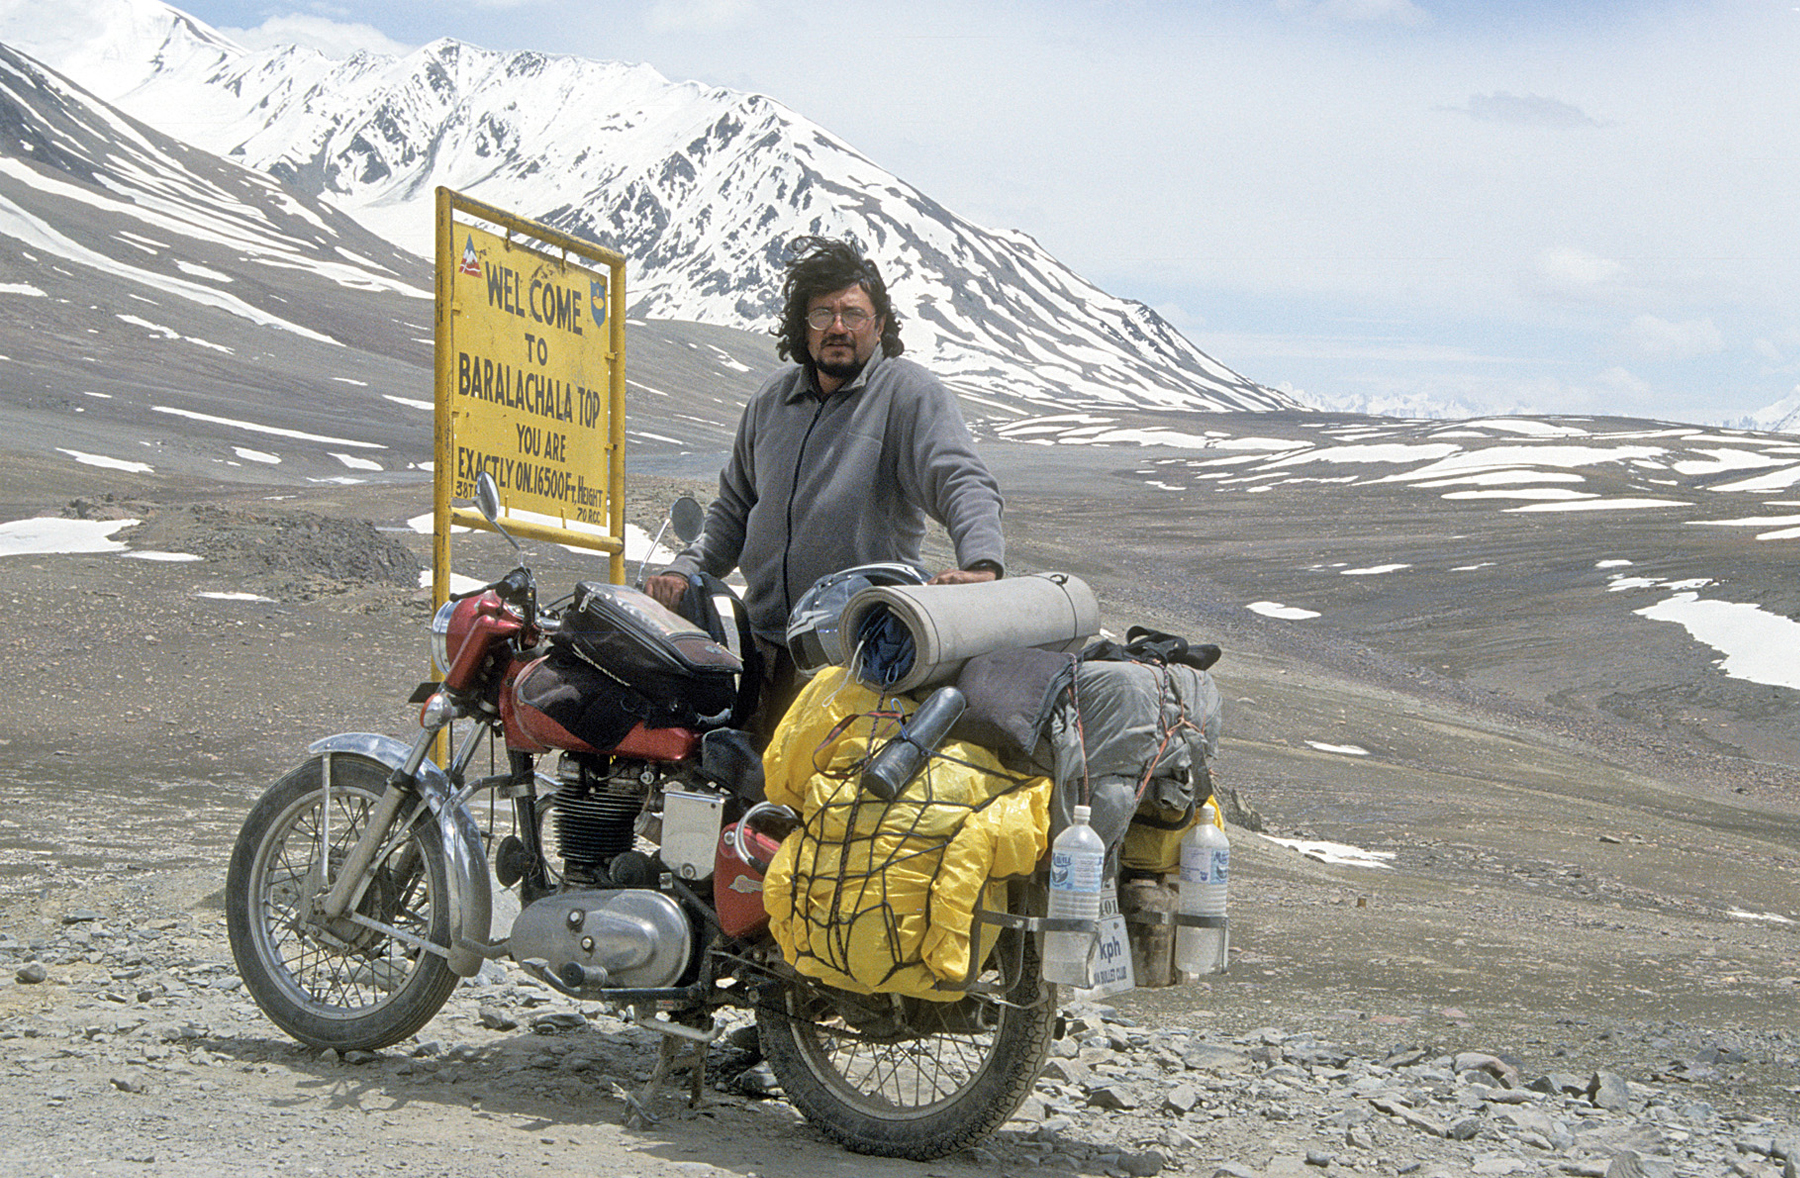 15 Best Travel Movies To Inspire A Bucket List; Riding Solo to the Top of the World